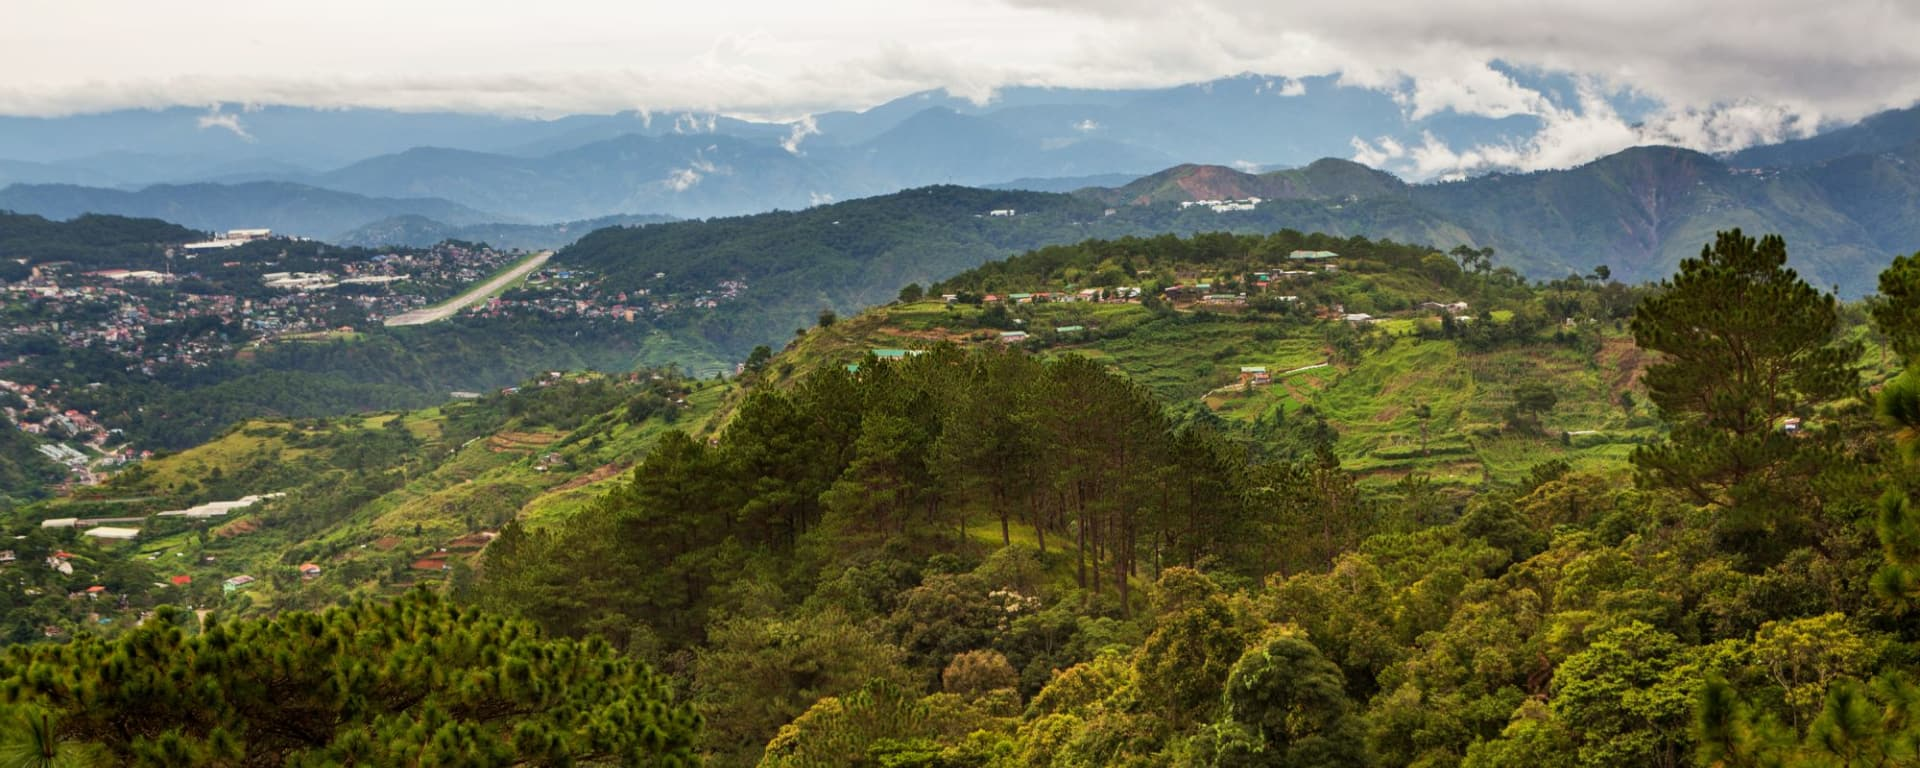 Nord-Luzon Rundreise ab Manila: Luzon Baguio City beautiful landscape